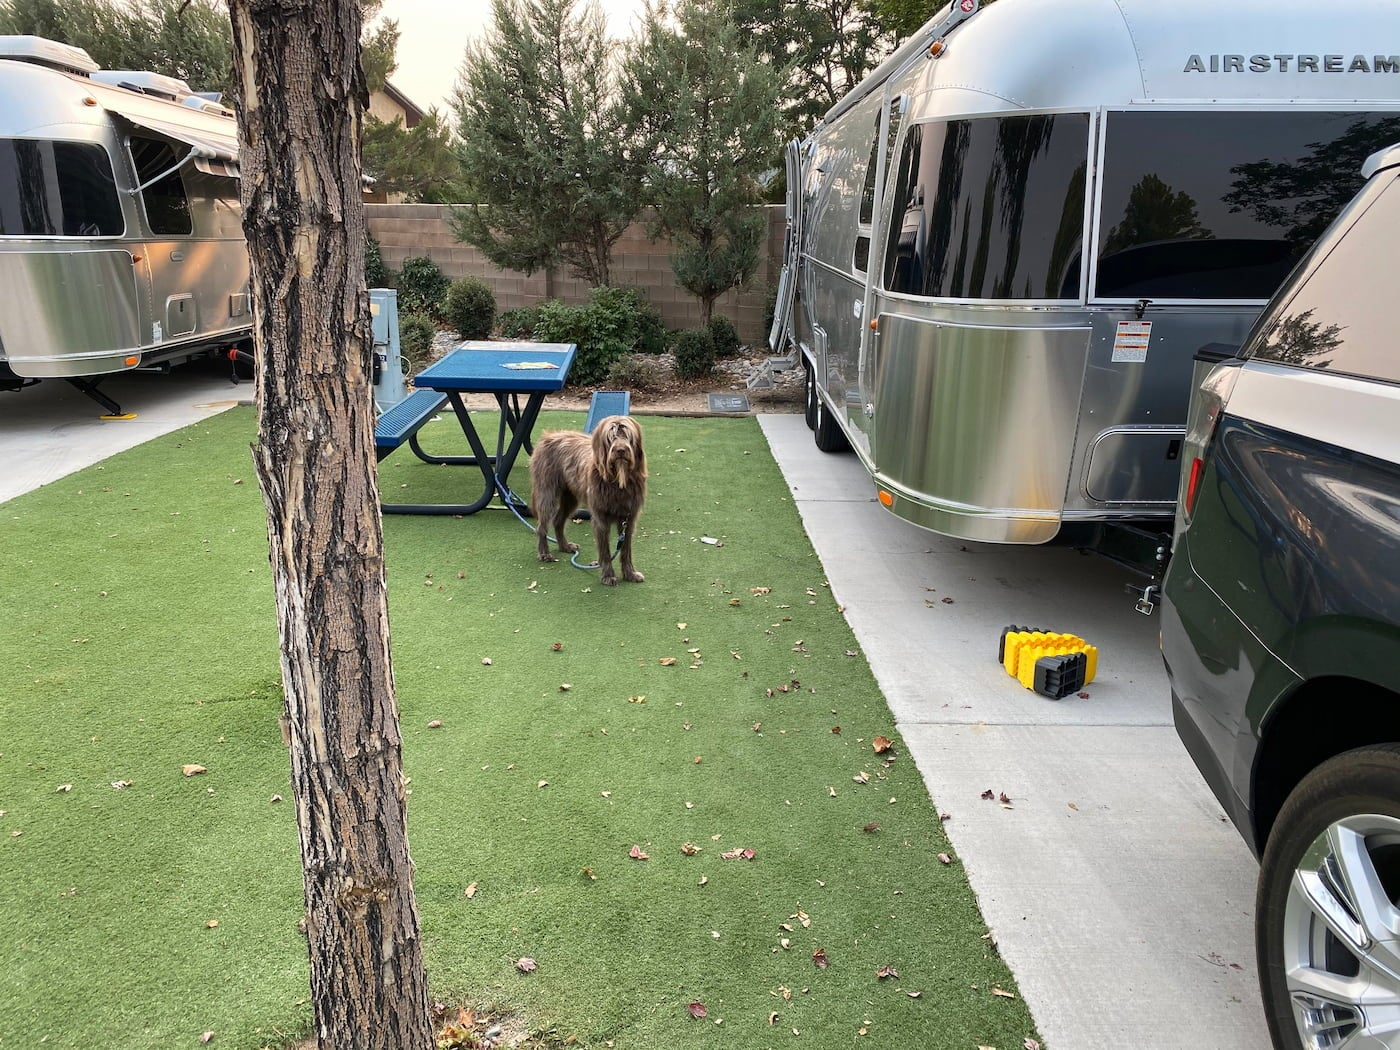 Long haired dog hanging out a a forested campsite between two airstreams.